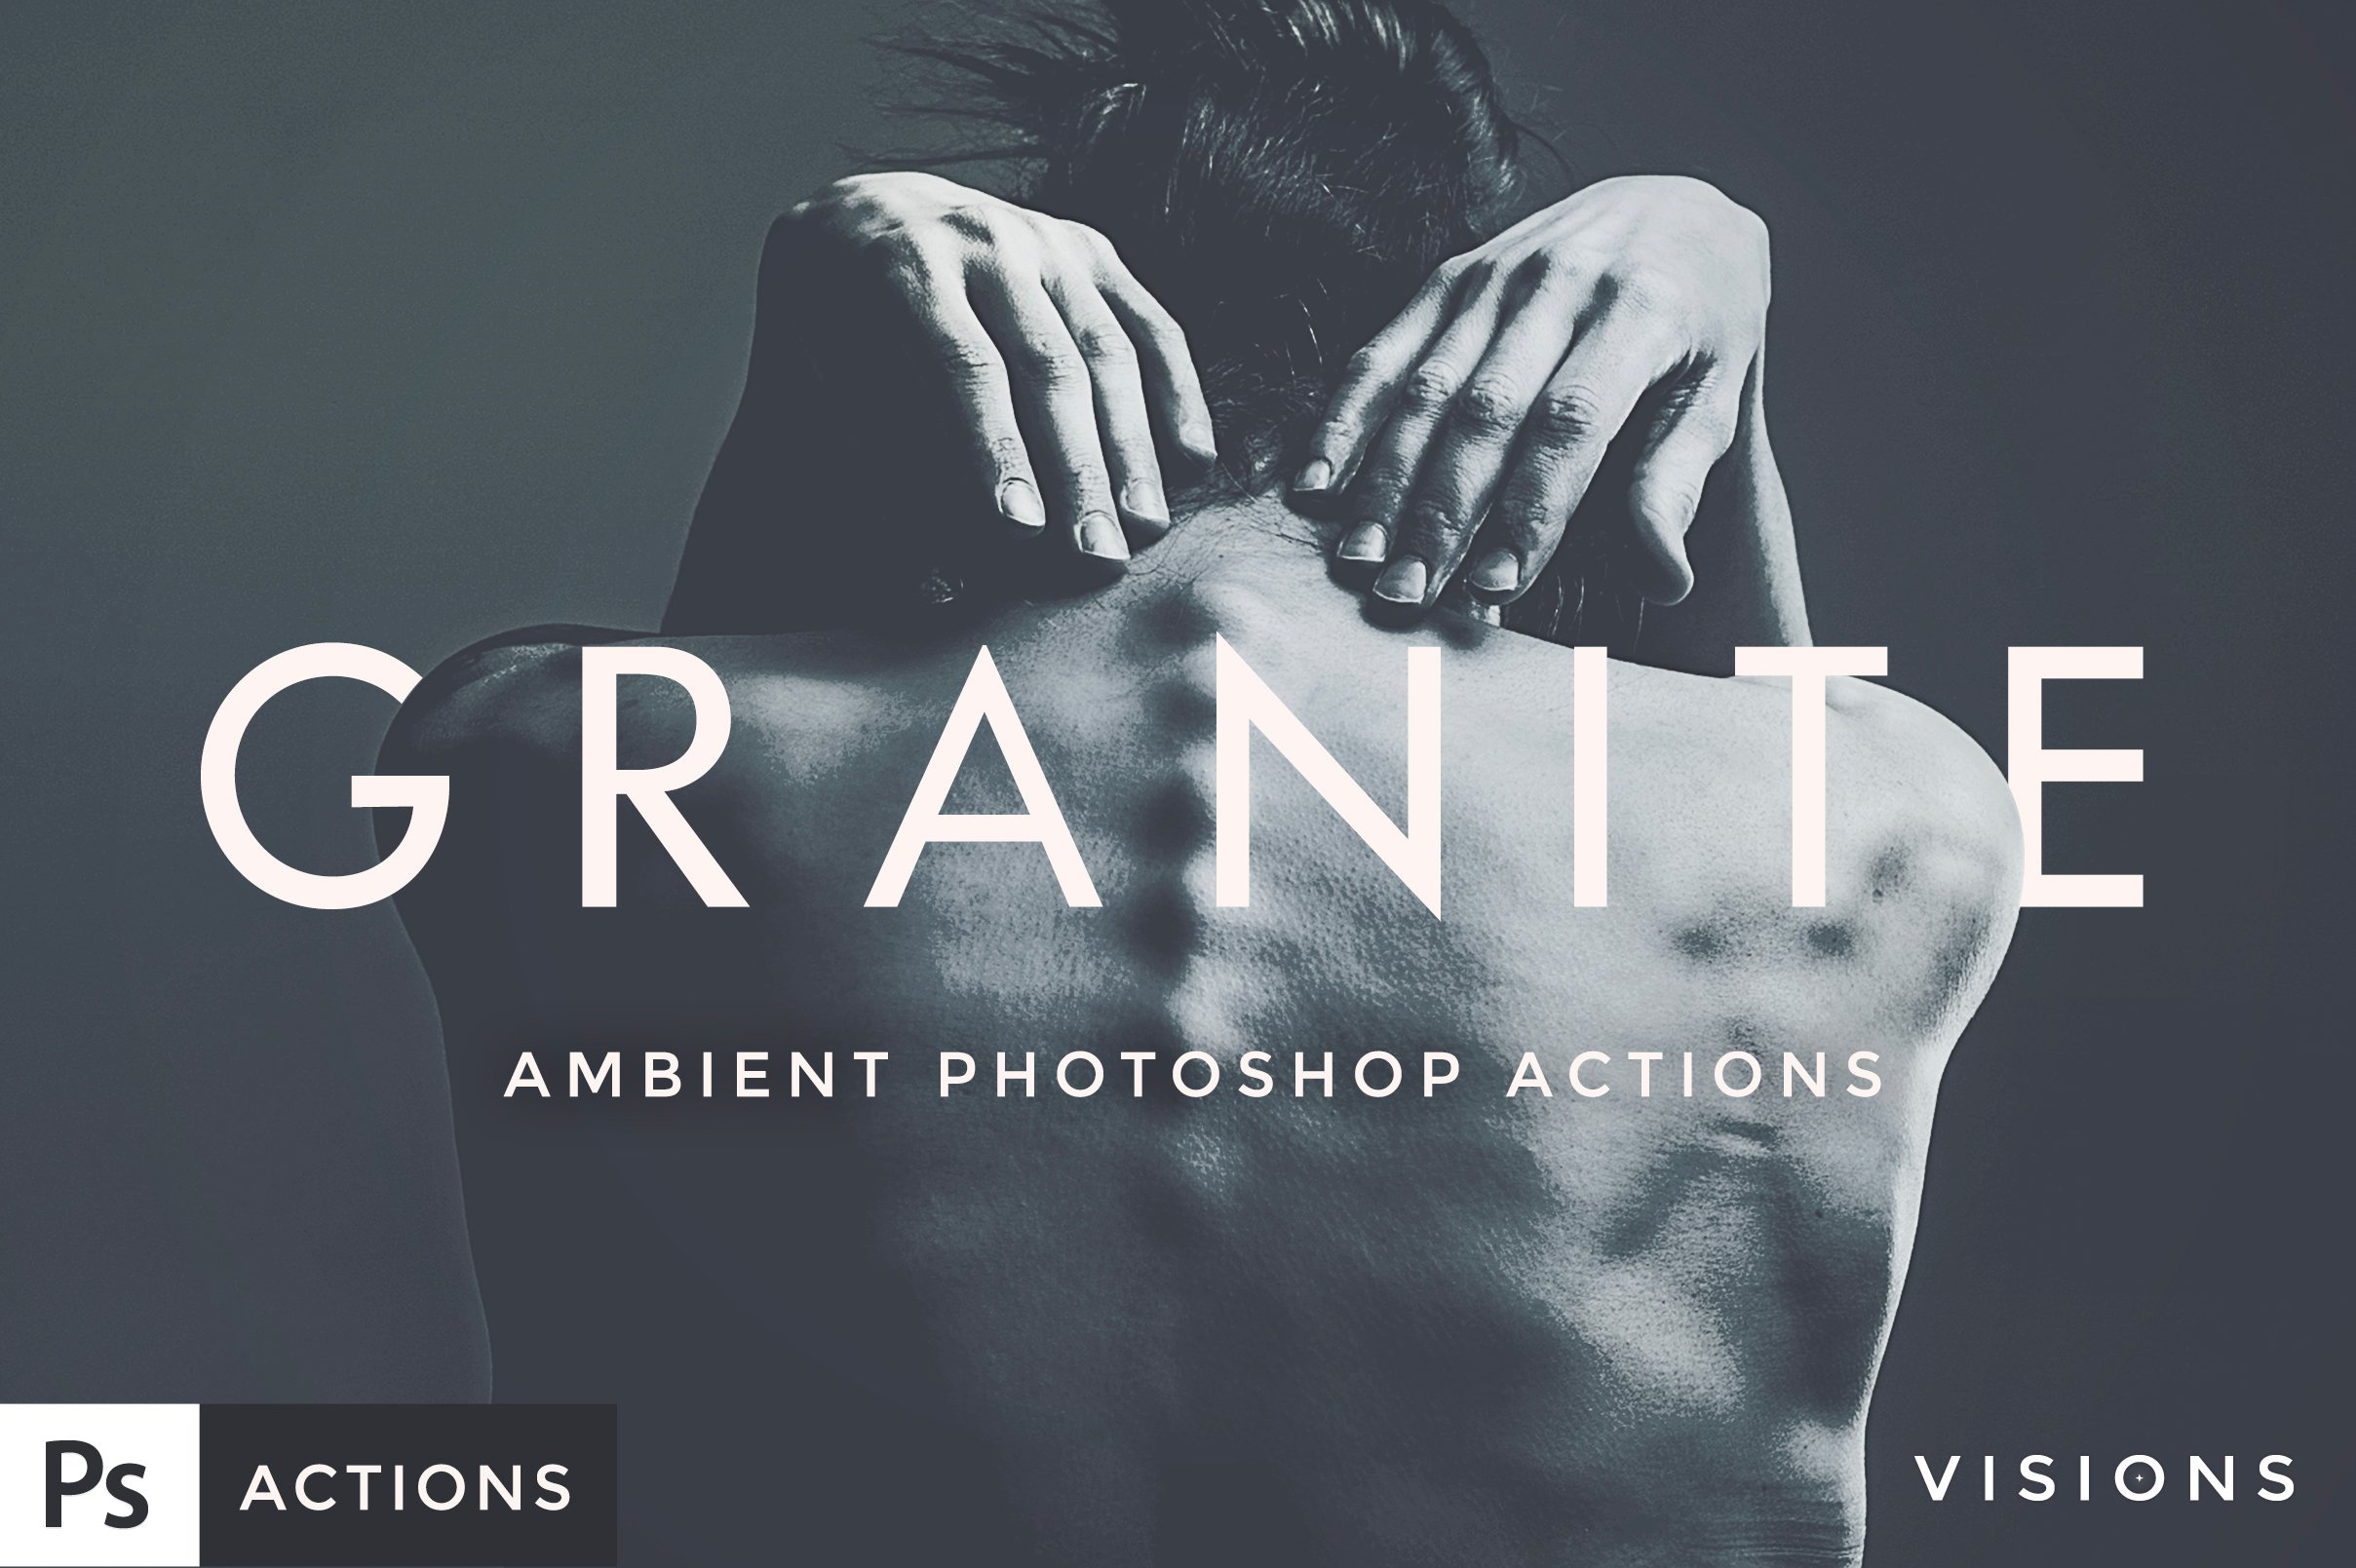 Forefathers GRANITE Photoshop Actions Set for photography and design.